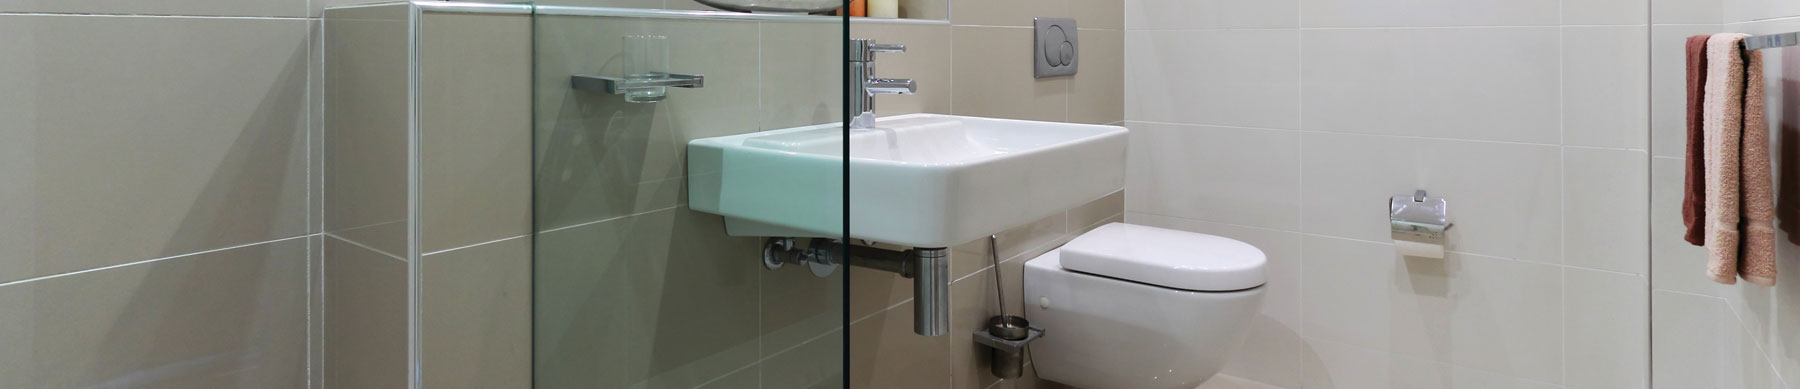 Abode renovations sydney bathroom and kitchen renovation for Bathroom remodelling sydney